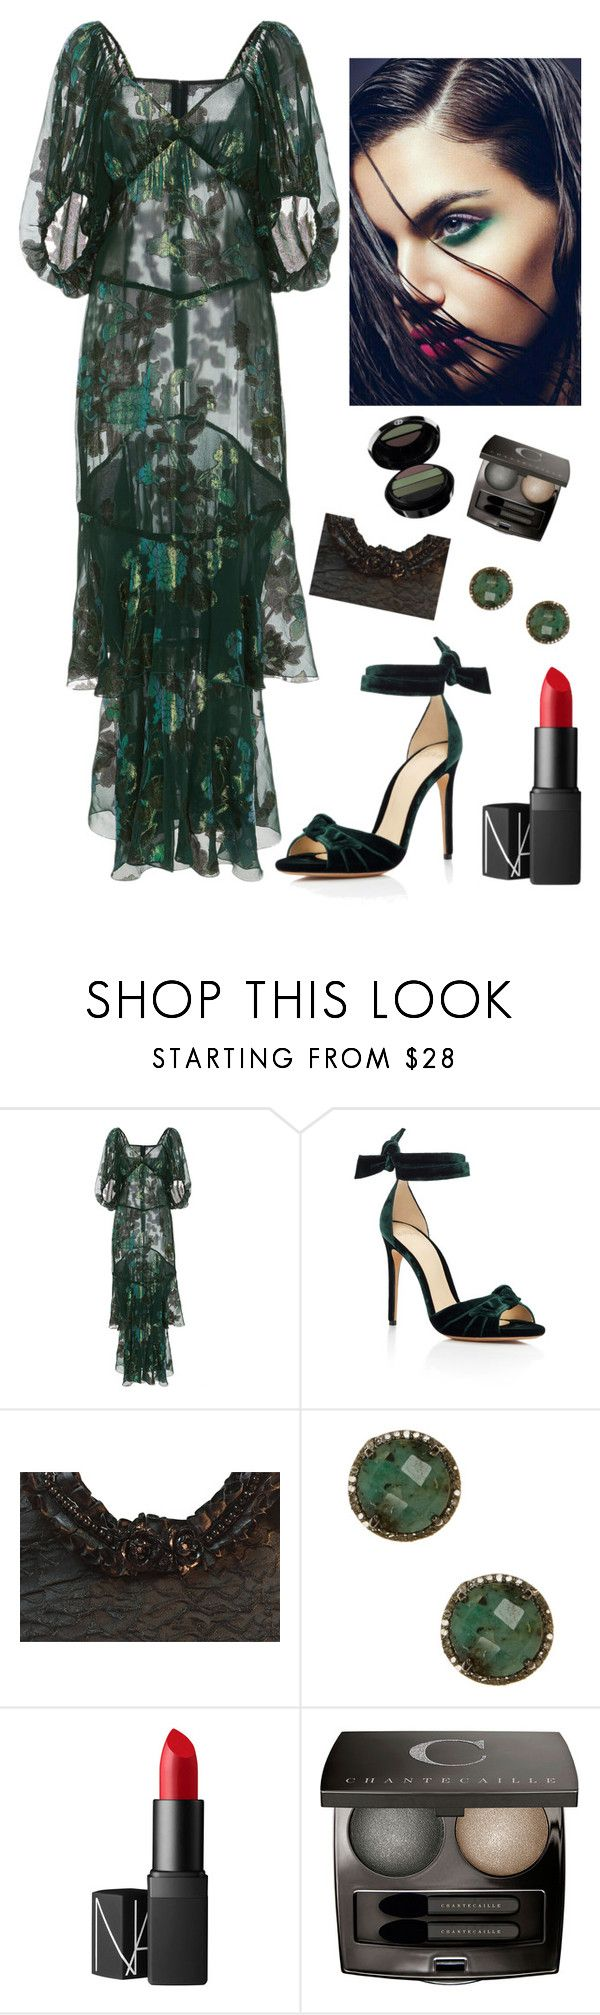 """Spring Green Gown"" by kotnourka ❤ liked on Polyvore featuring Anna Sui, Alexandre Birman, ADORNIA, NARS Cosmetics, Chantecaille and Giorgio Armani"